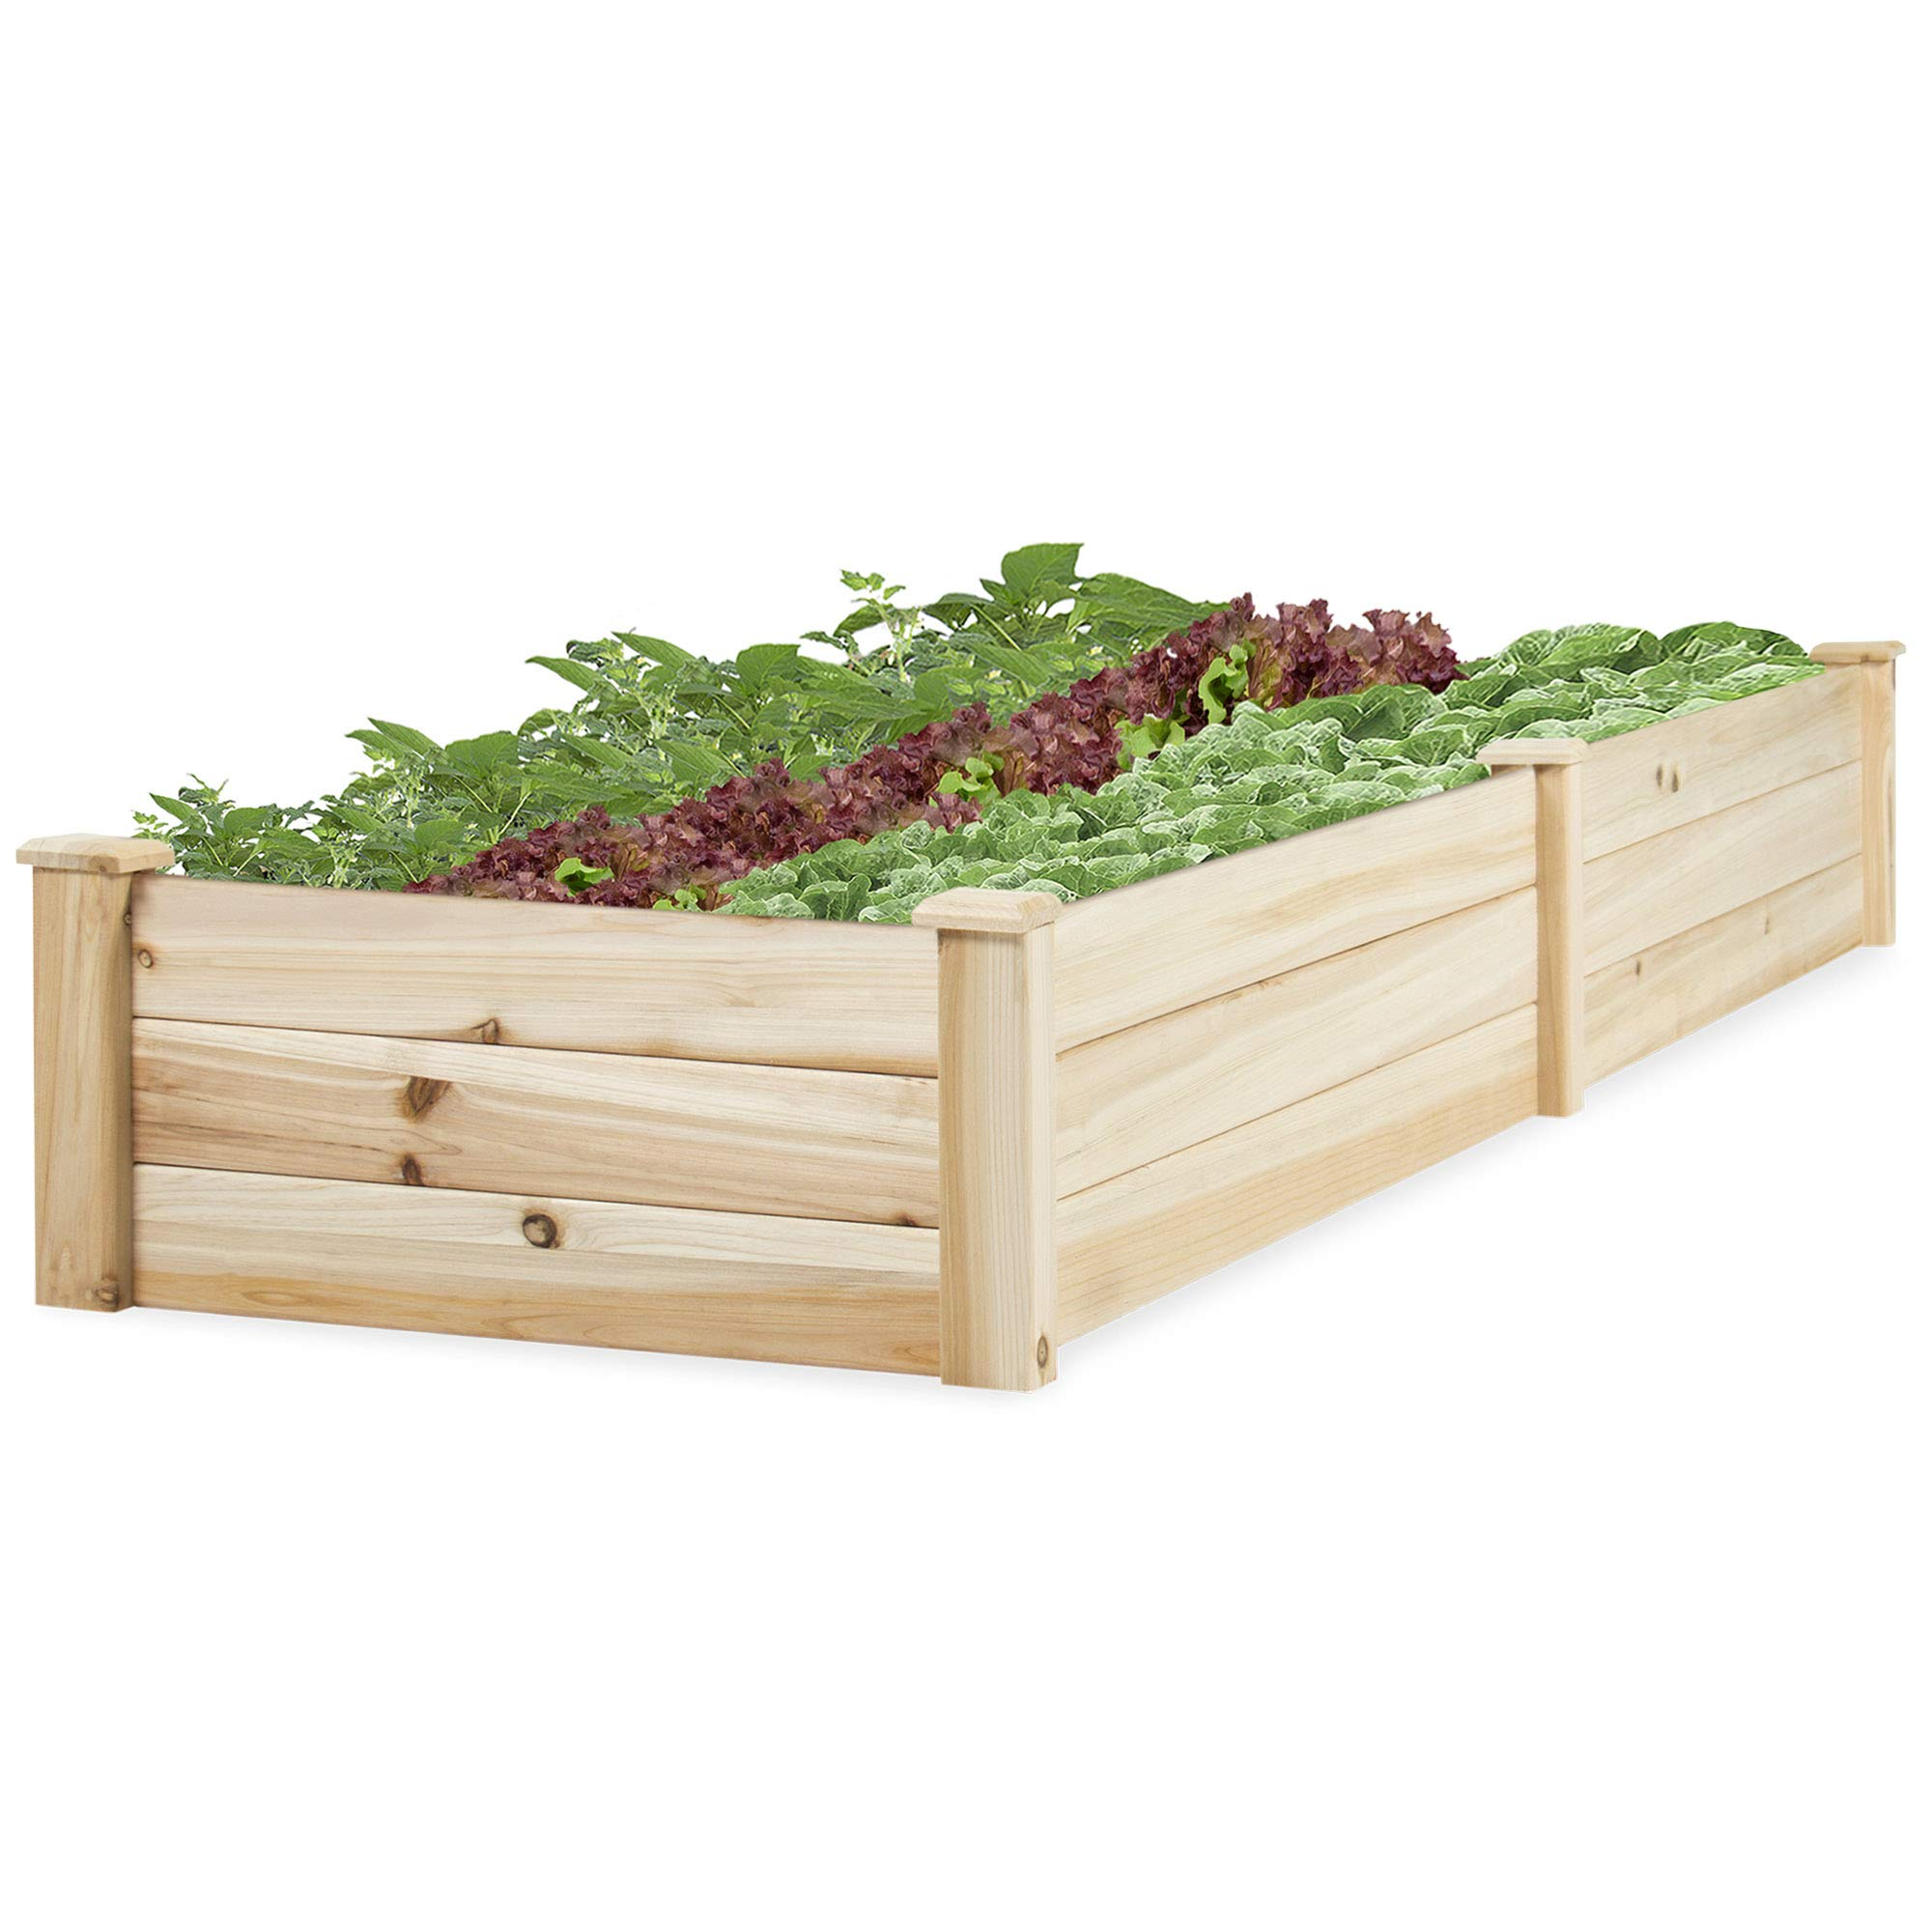 Best Choice Products 8x2ft OutdoorElevated Wooden Gardening Bed Planter Box for Garden, Lawn, Yard - Natural Chinese Fir Wood